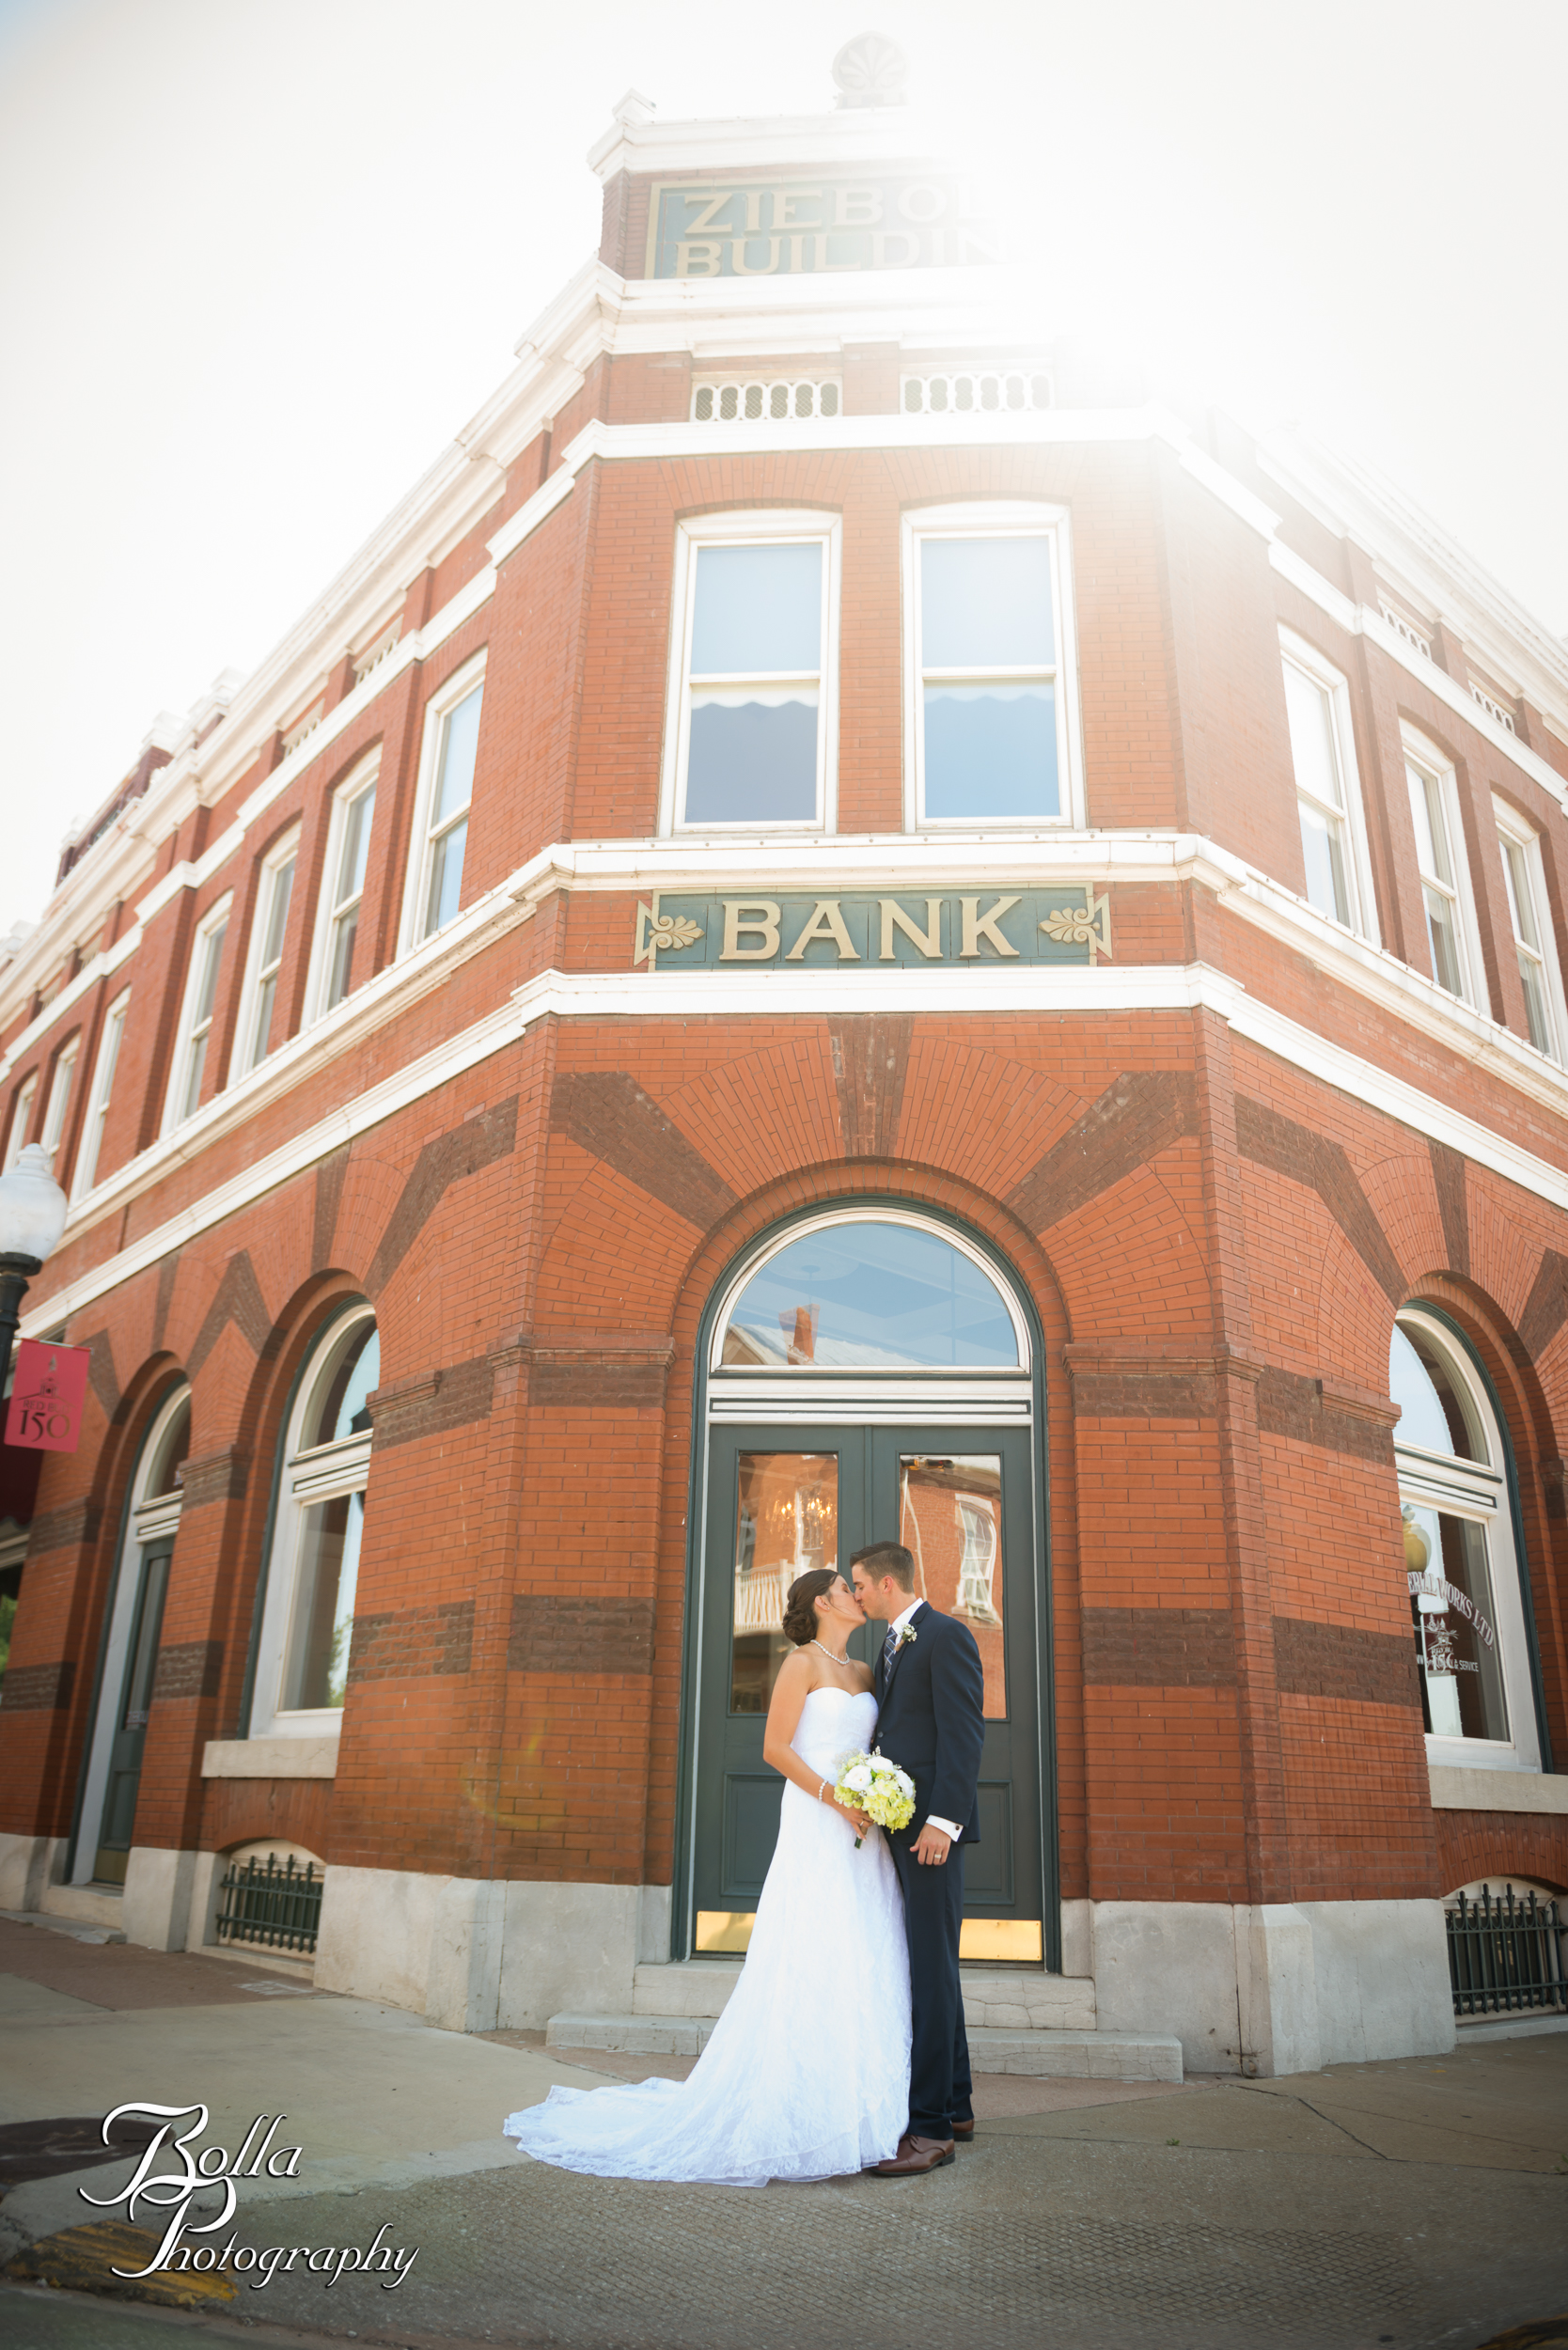 Bolla_photography_edwardsville_wedding_photographer_st_louis_weddings_Jessica_Barbachem_Dillon_Kaesberg_Waterloo_Red_Bud-0003.jpg